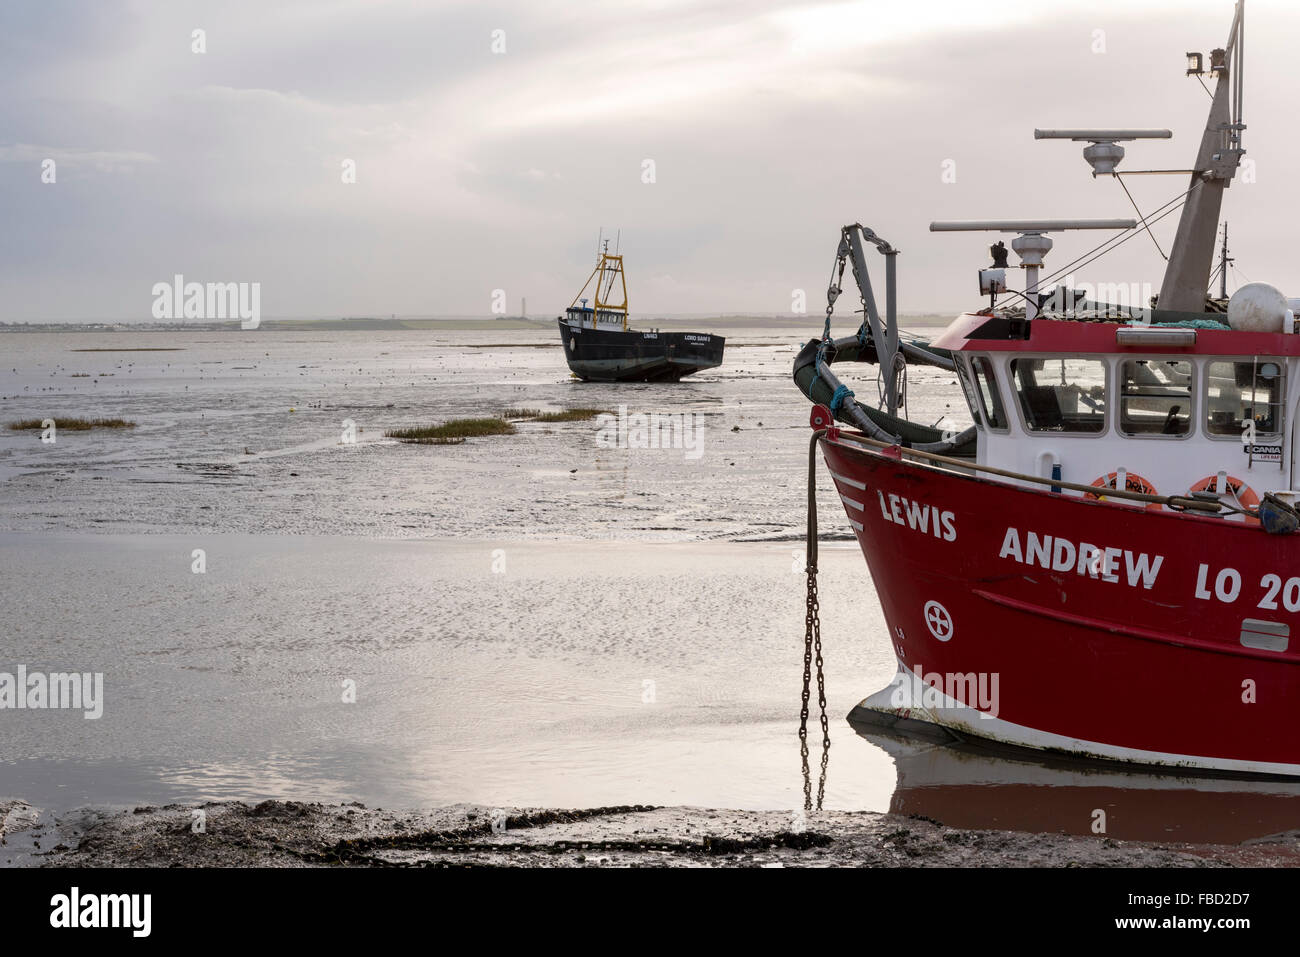 Fishing boats at low tide at Leigh on Sea, Essex - Stock Image